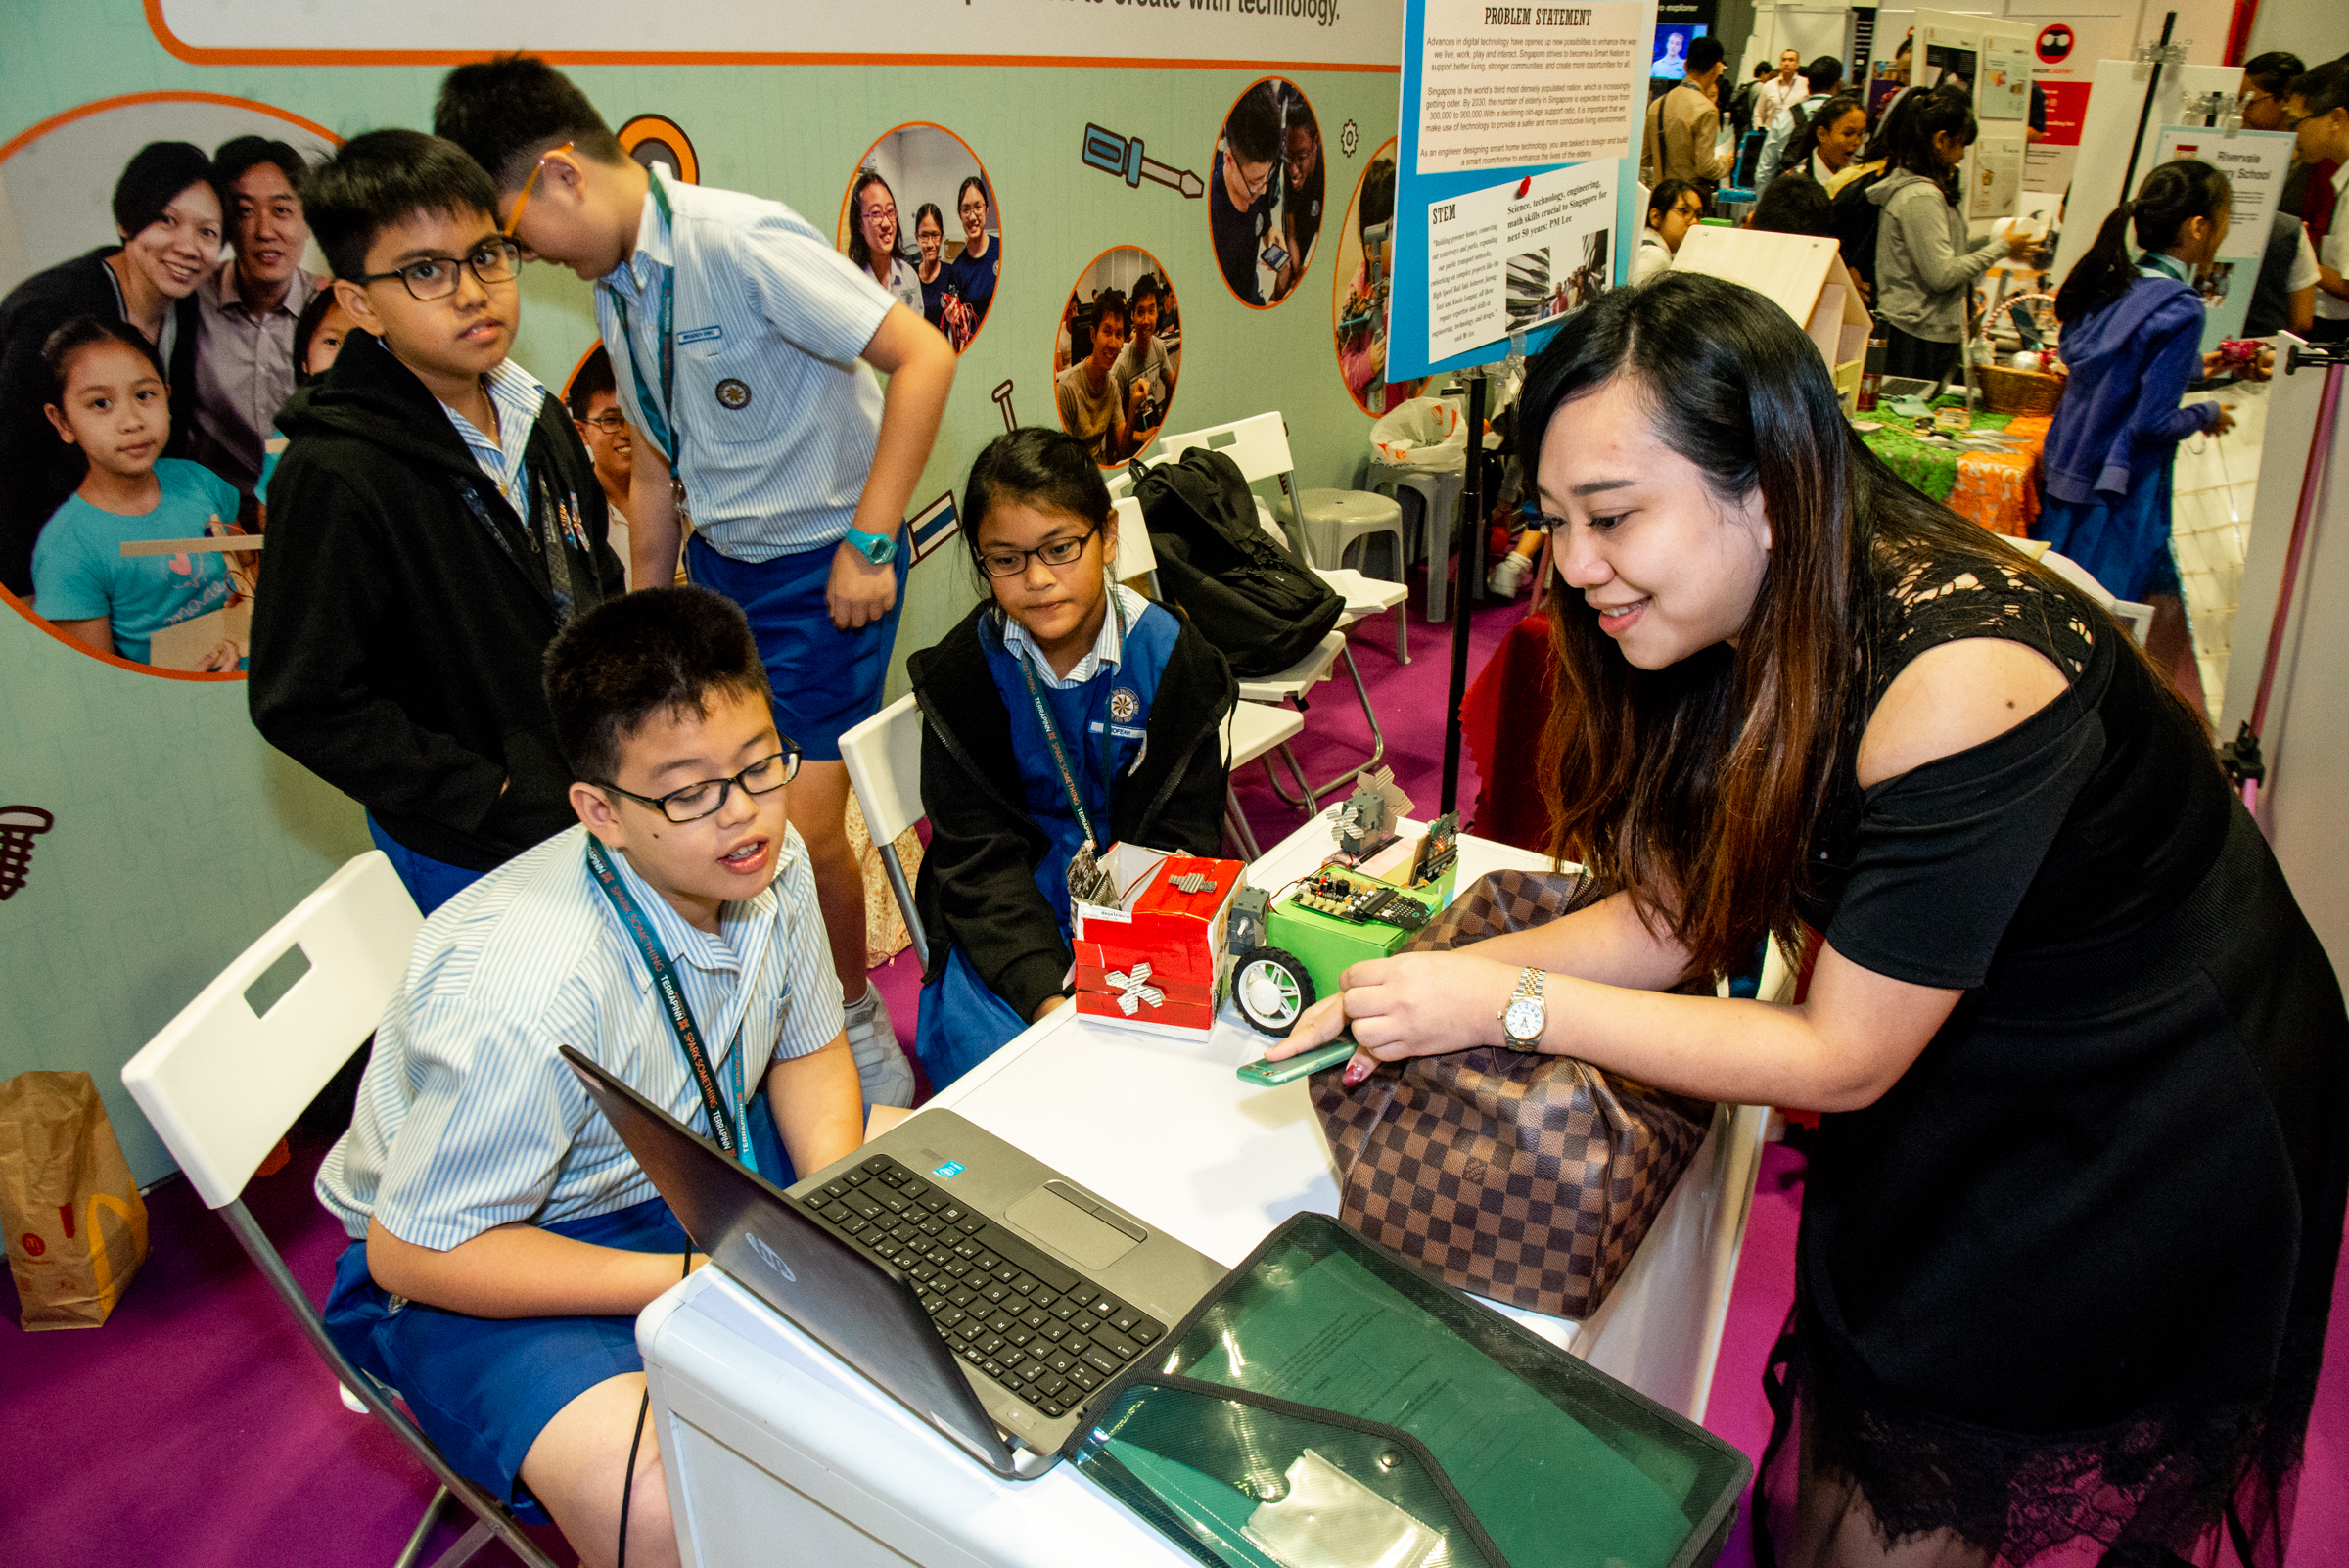 The fourth annual edition of EduTECH Asia 2019 is back! Join us at the IMDA zone, at the free-to-attend EduTECH Asia 2019 expo to see how we prepare students to be future-ready digital citizens!